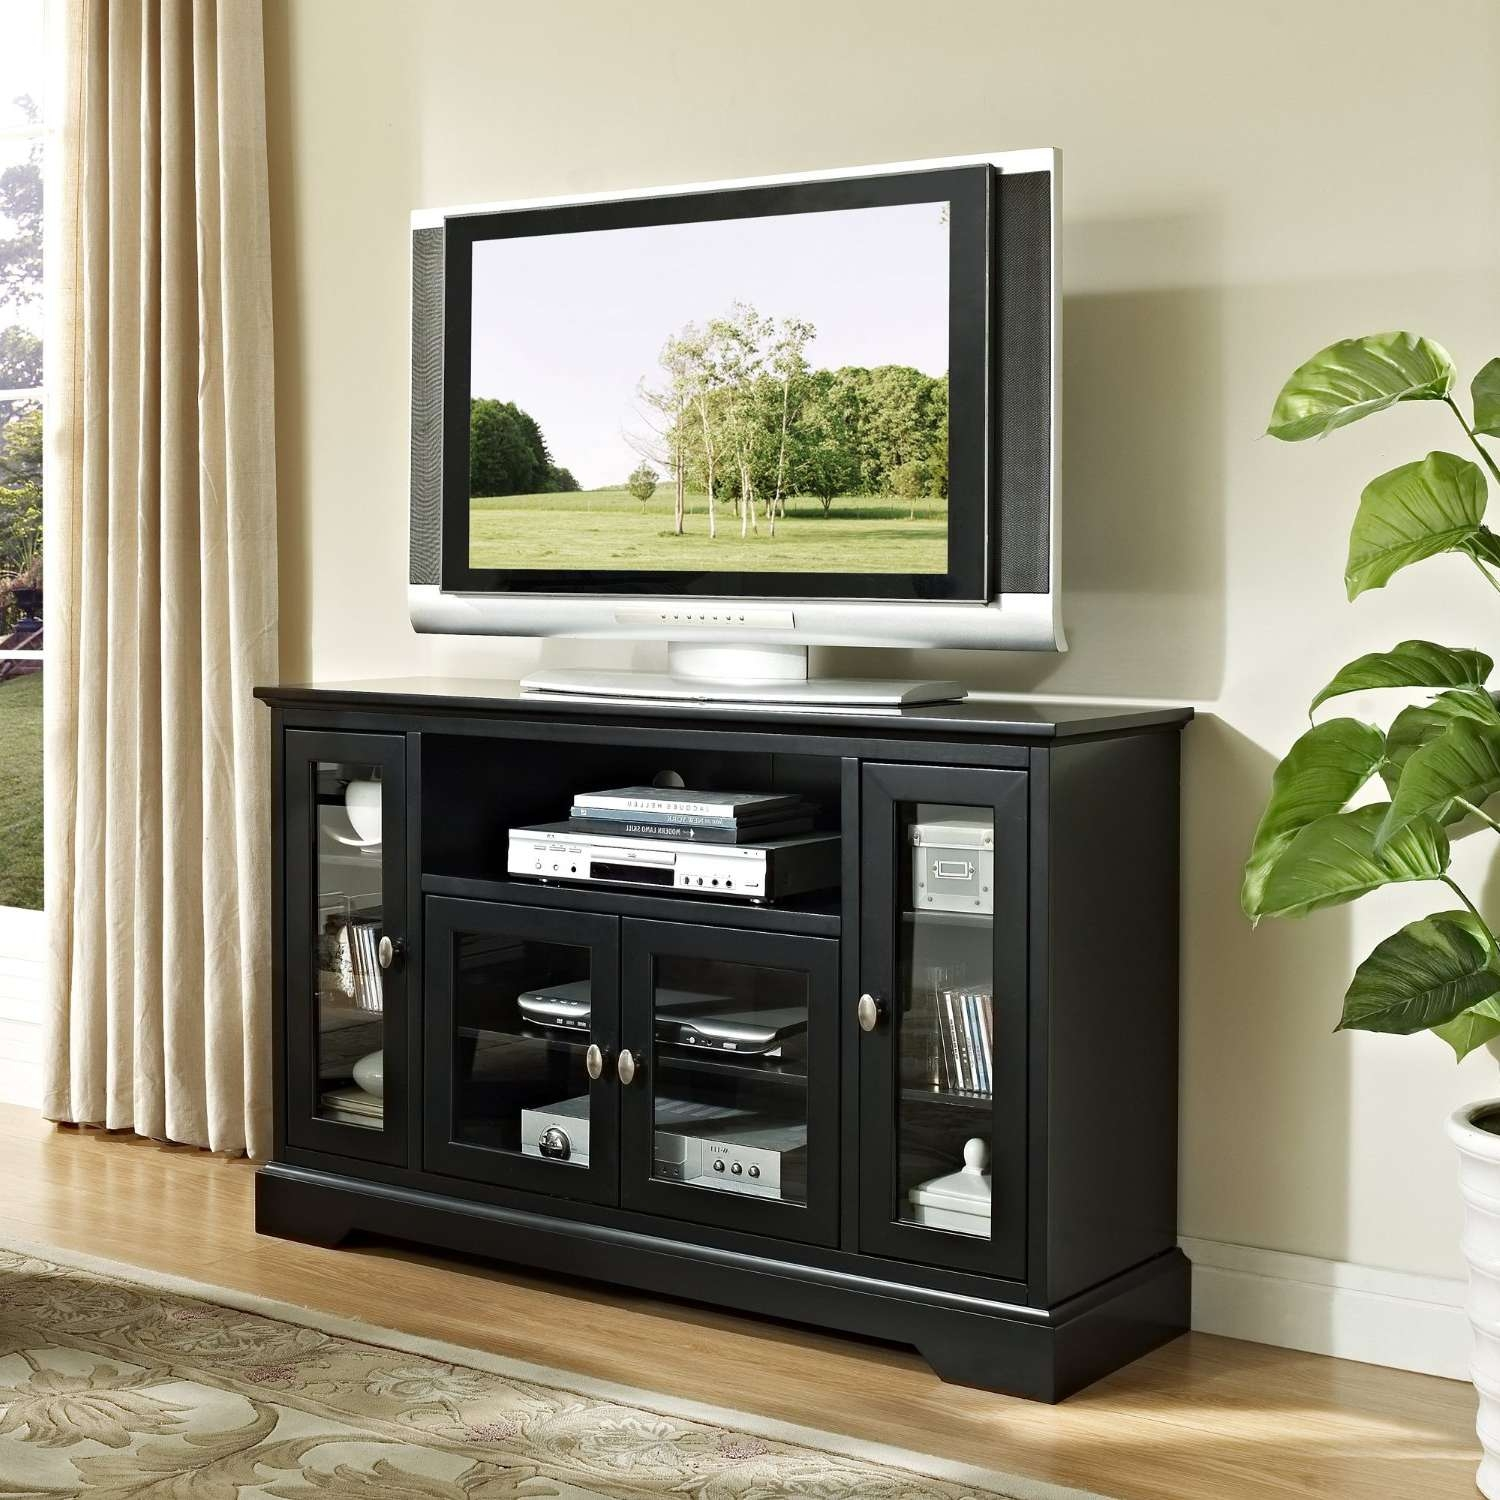 Tv Stands For 55 Inch Flat Screen – Furniture Depot Throughout Wooden Tv Stands For 55 Inch Flat Screen (View 12 of 15)